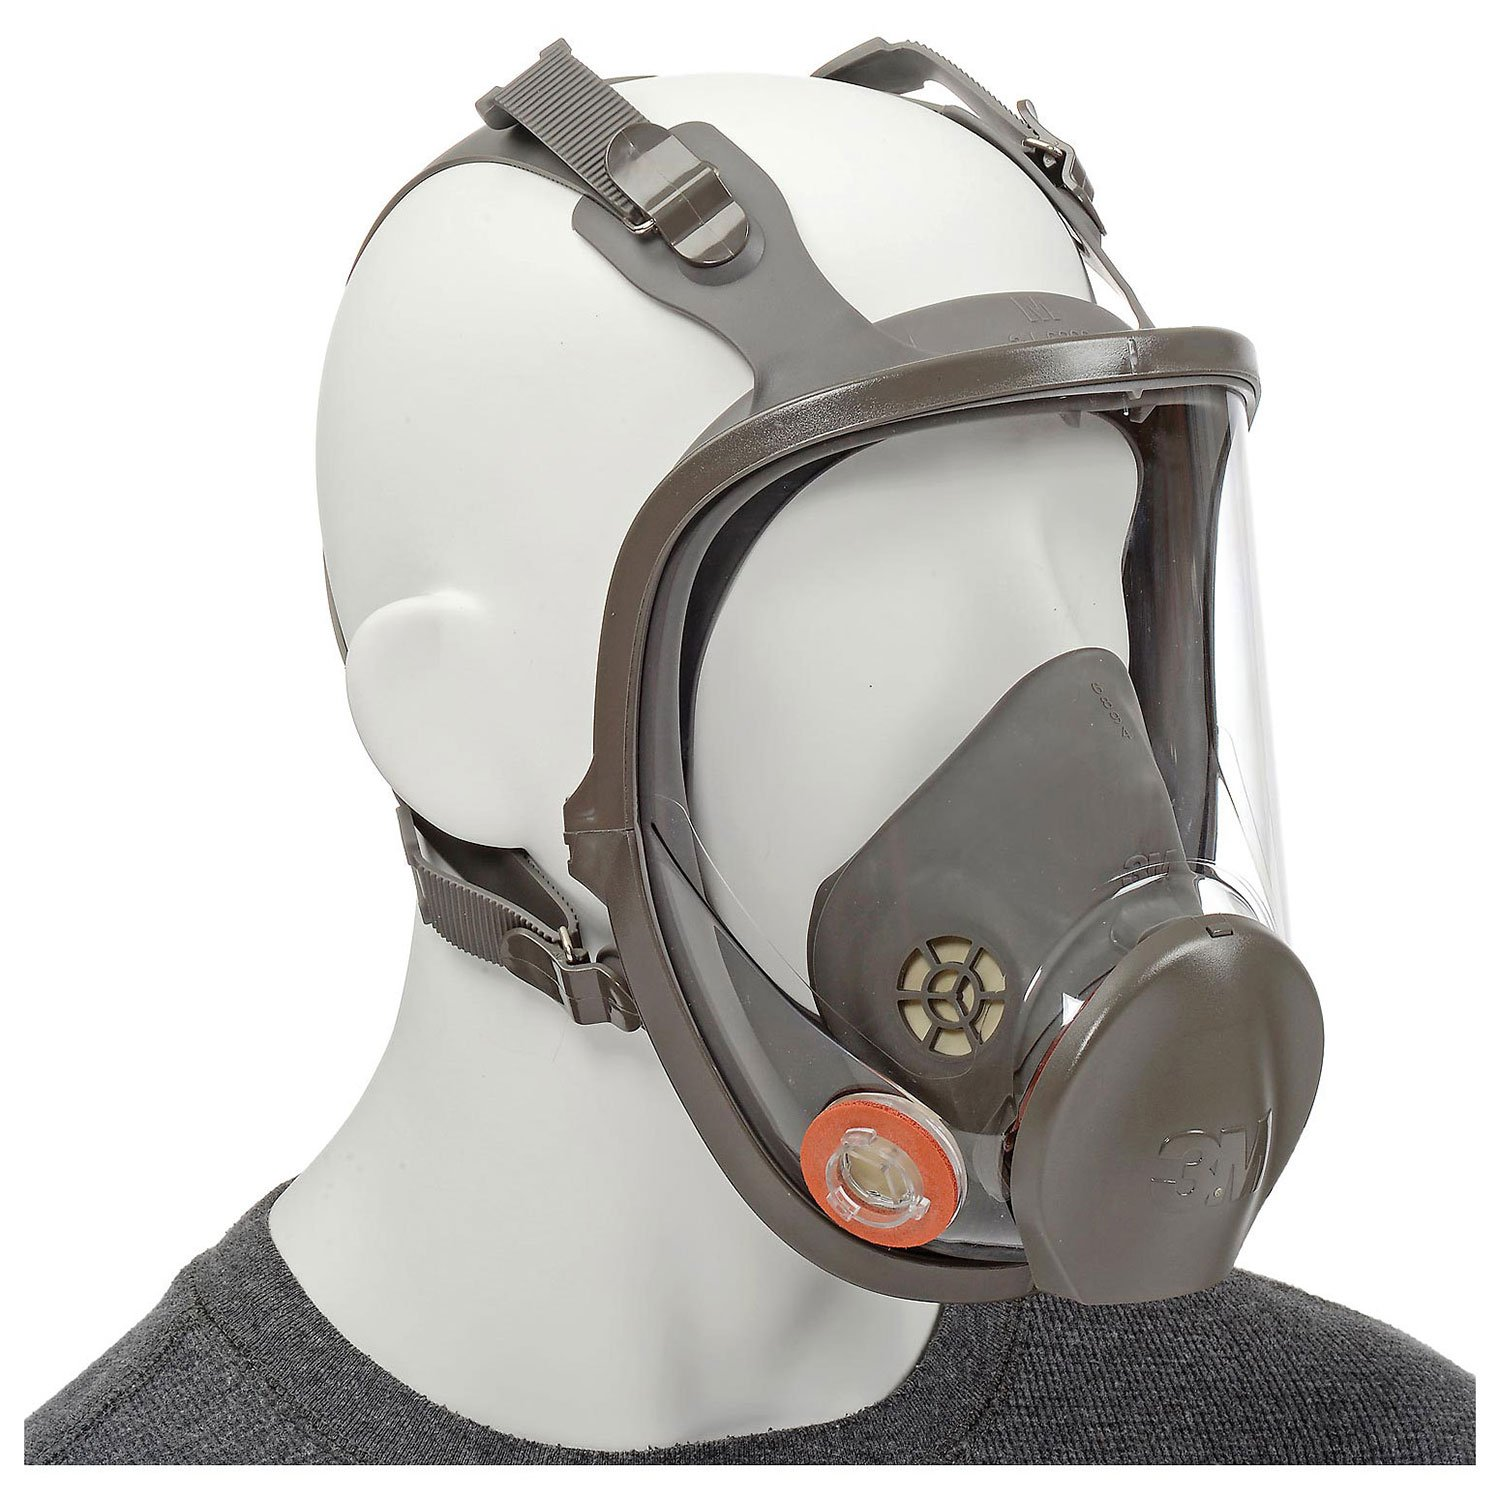 3M 6800 Reusable Respirator, Full Facepiece, Medium, 1 Each by 3M